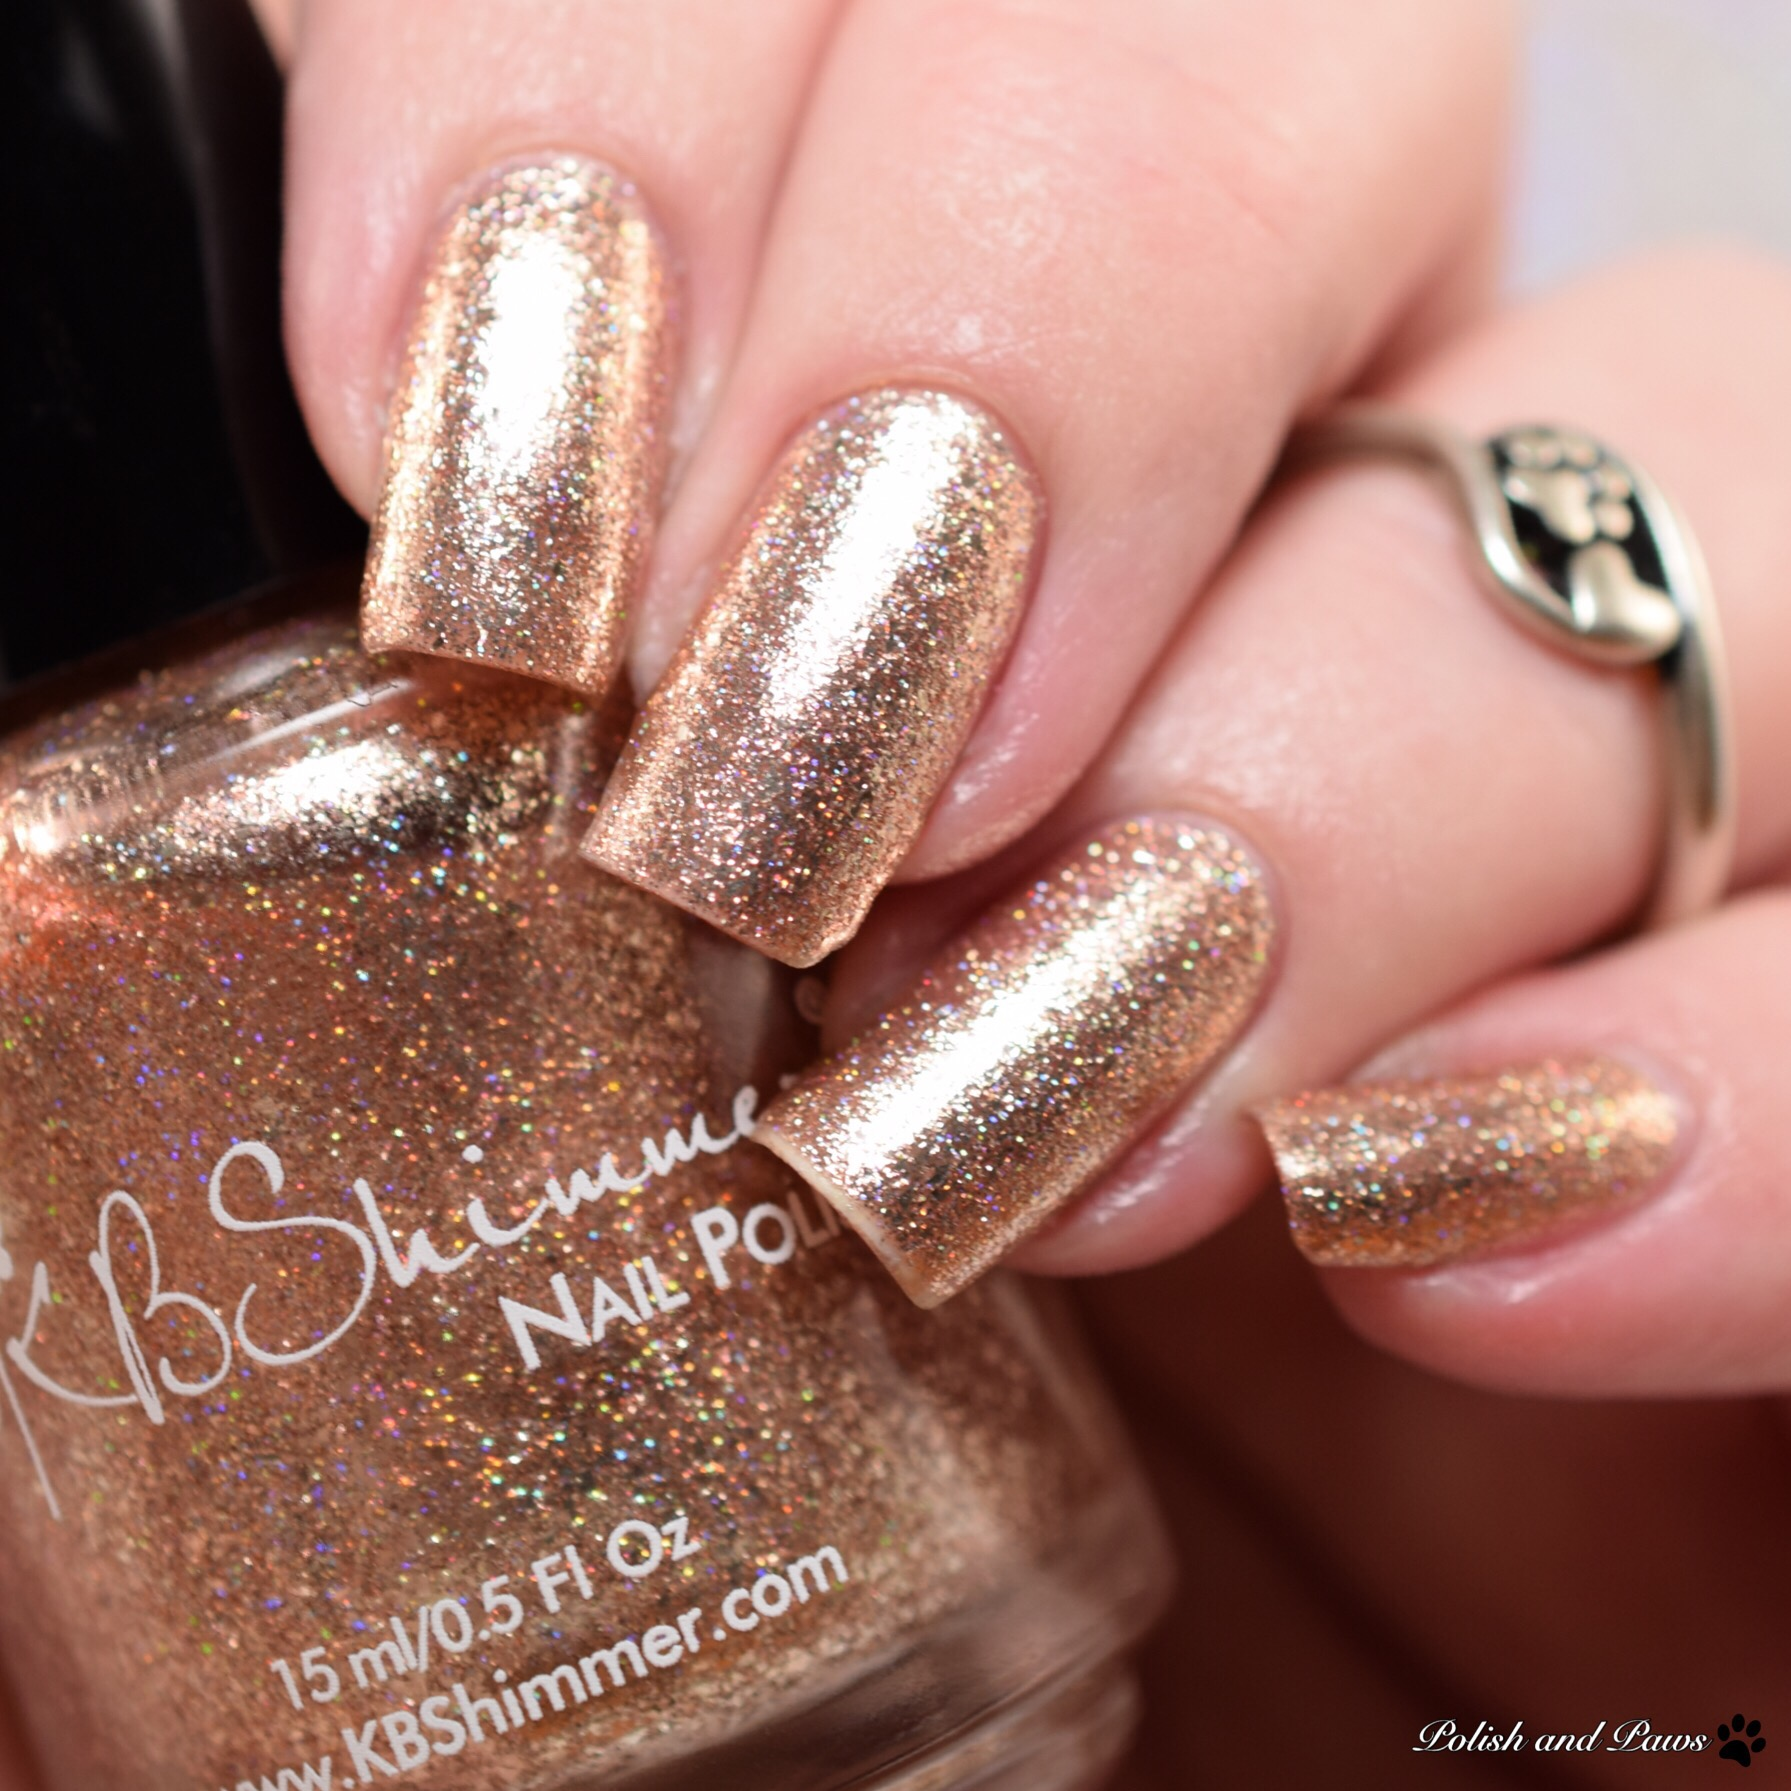 KBShimmer One Night Sand